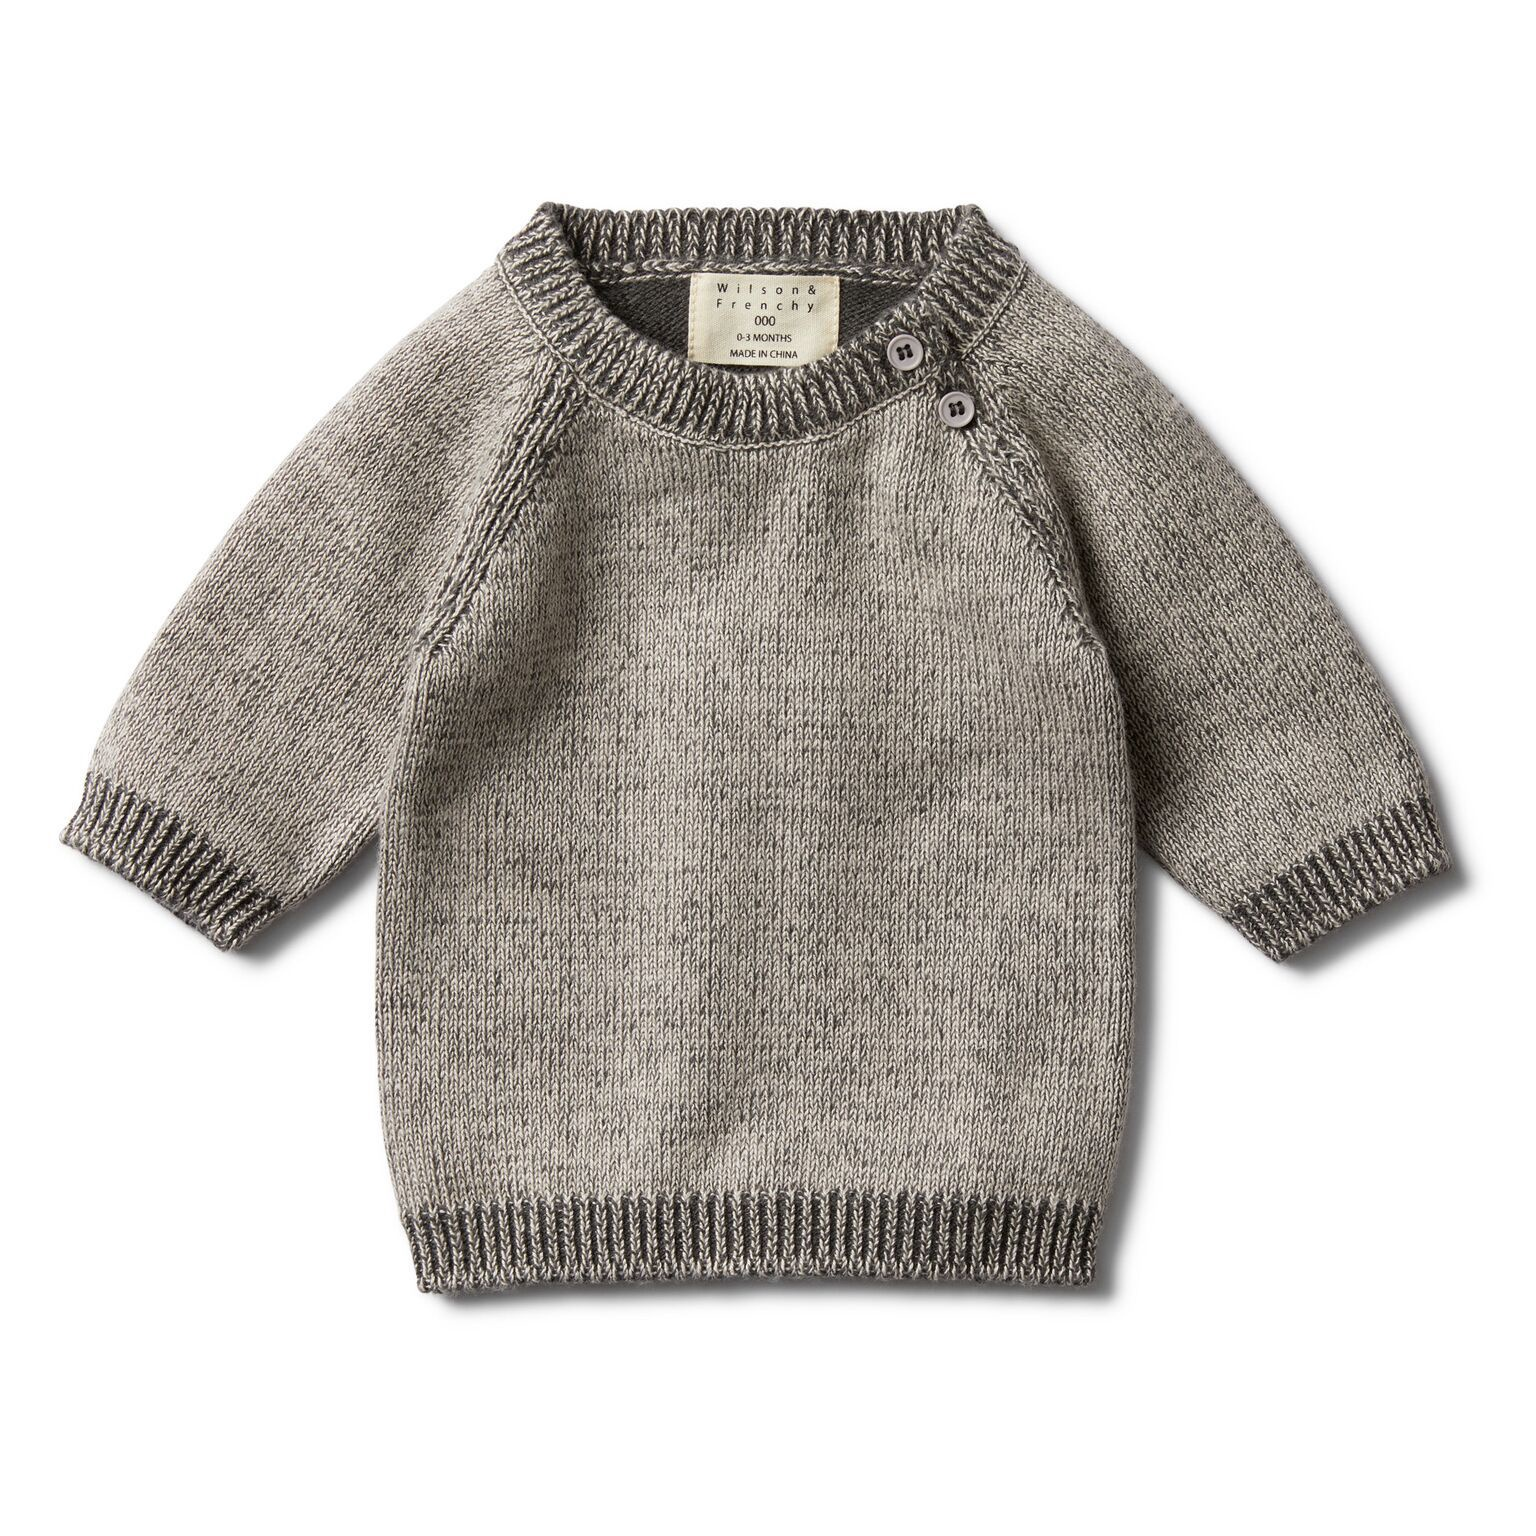 WF Dark moon two tone jumper